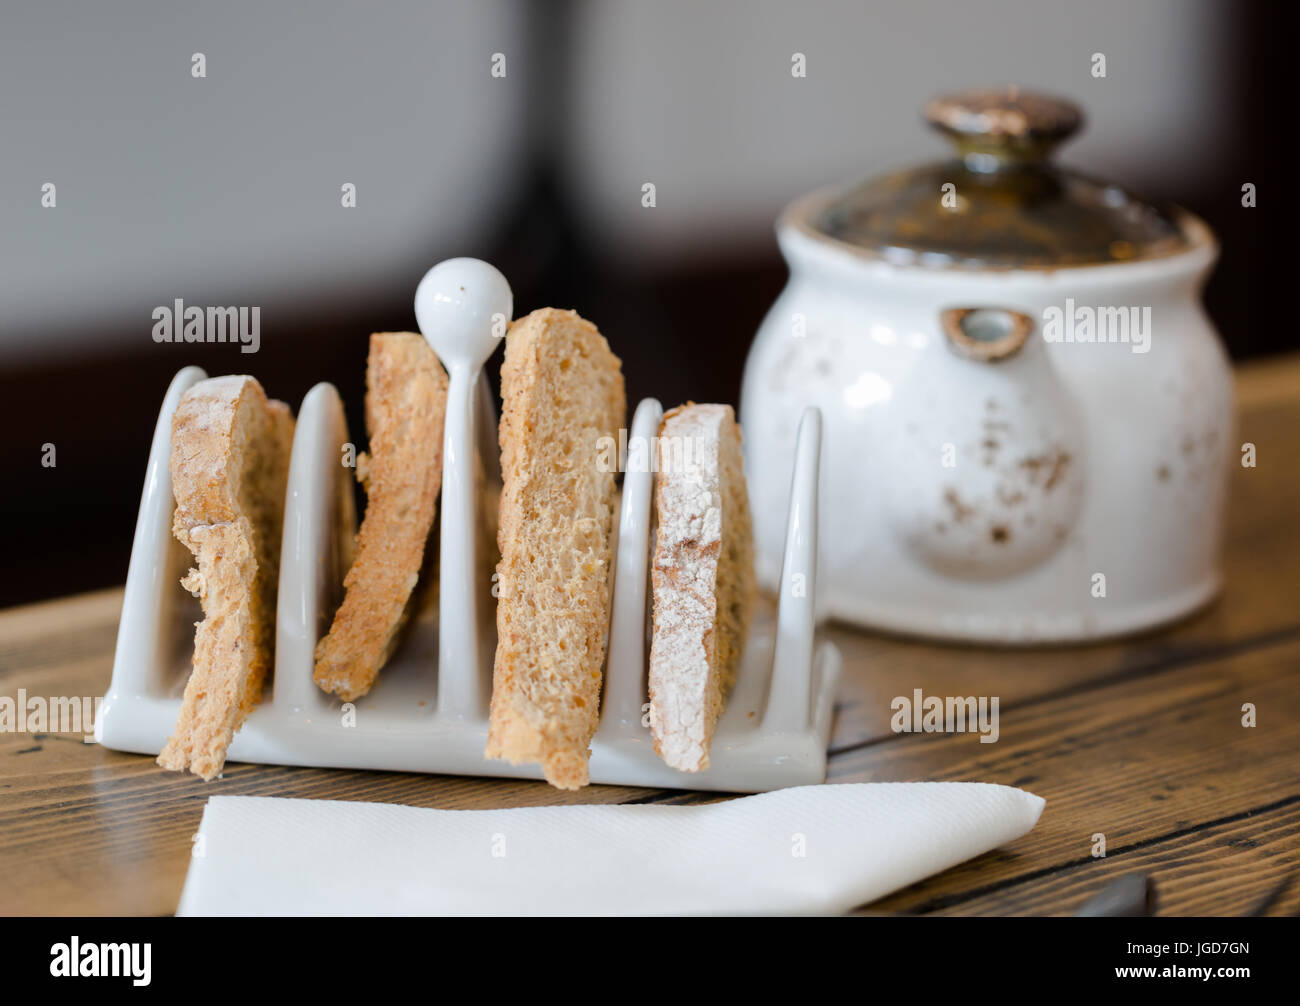 Four slices of toasted bread in toasts holder on wooden table close up. Foreground focus, tea pot in blurred background. Low angle close up view. Shal Stock Photo